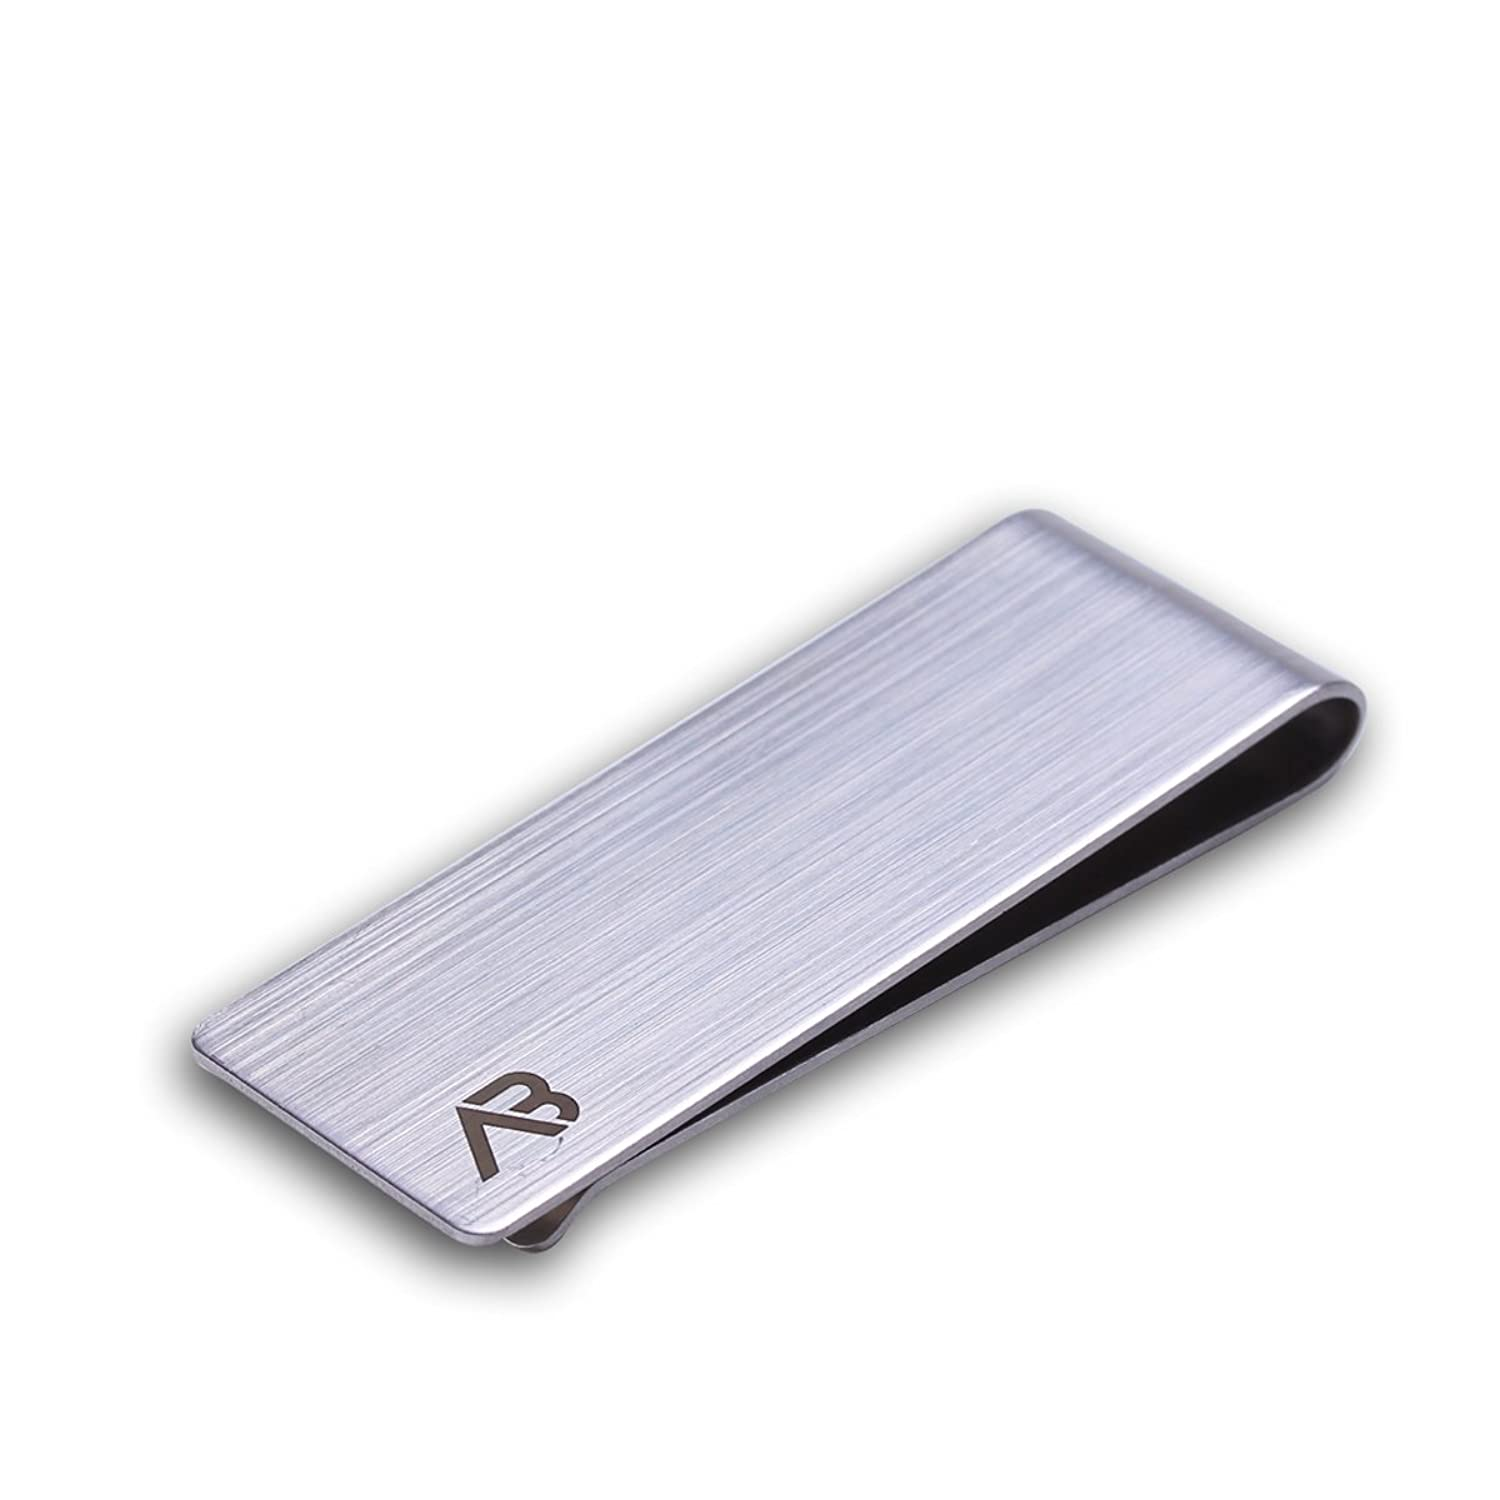 classic cash money clip credit card holder - Money Clip And Card Holder